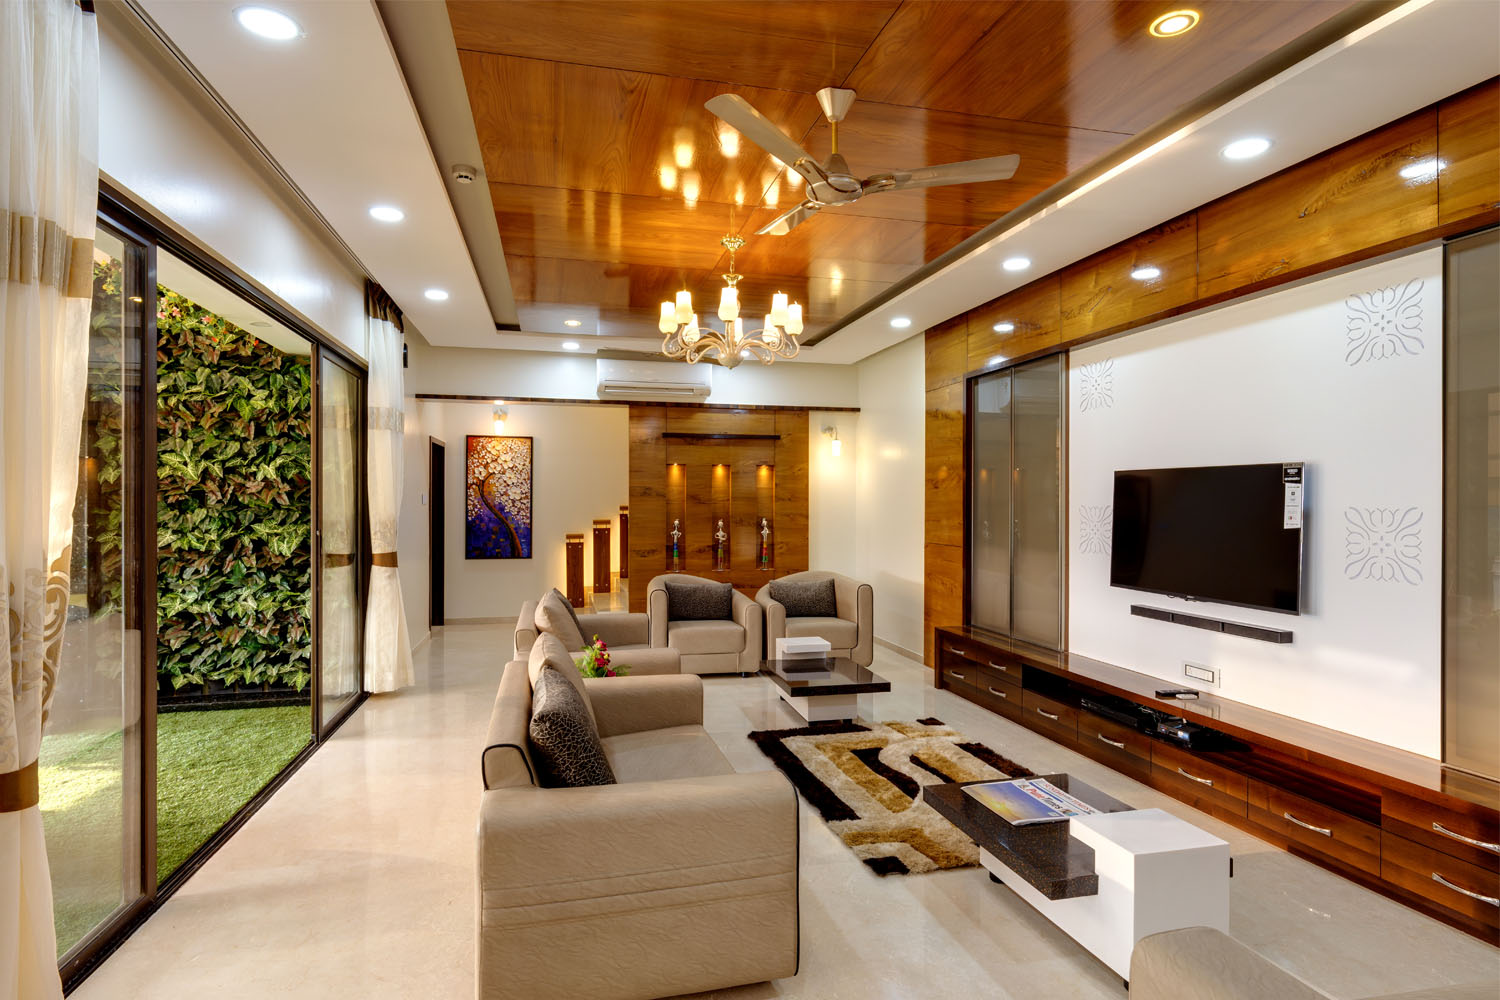 Best interior designer pune nerlekar interior designing for Home interior images